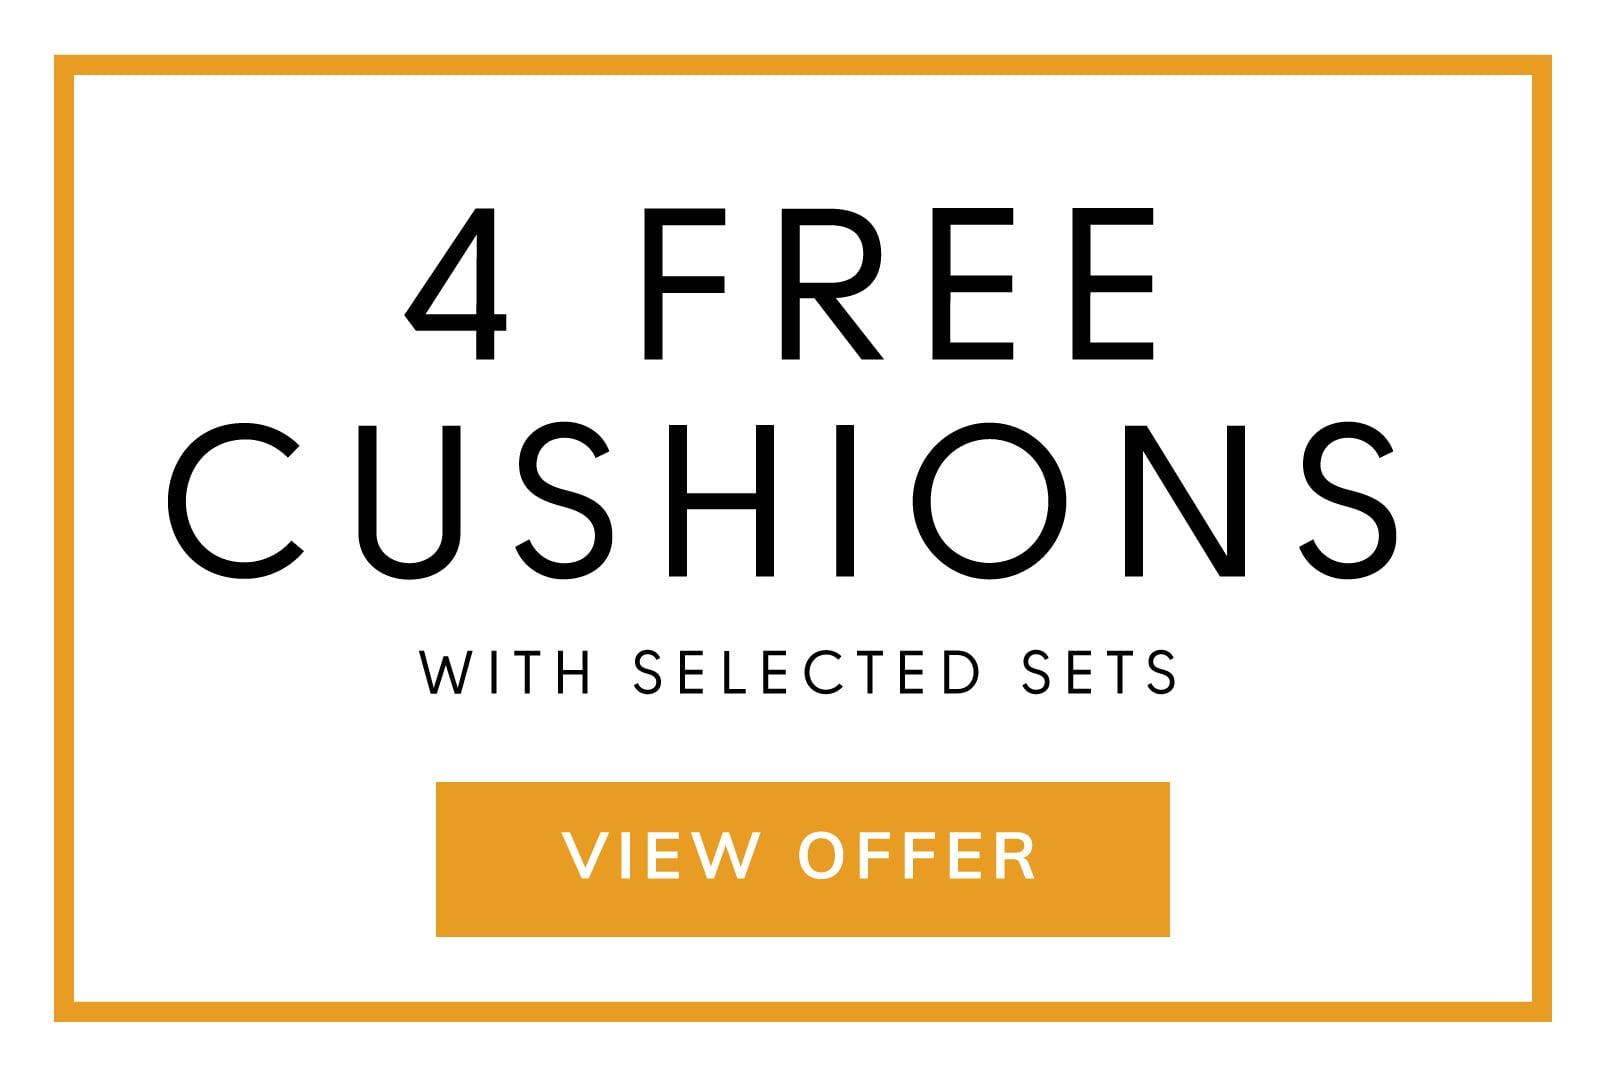 4 FREE Scatter Cushions